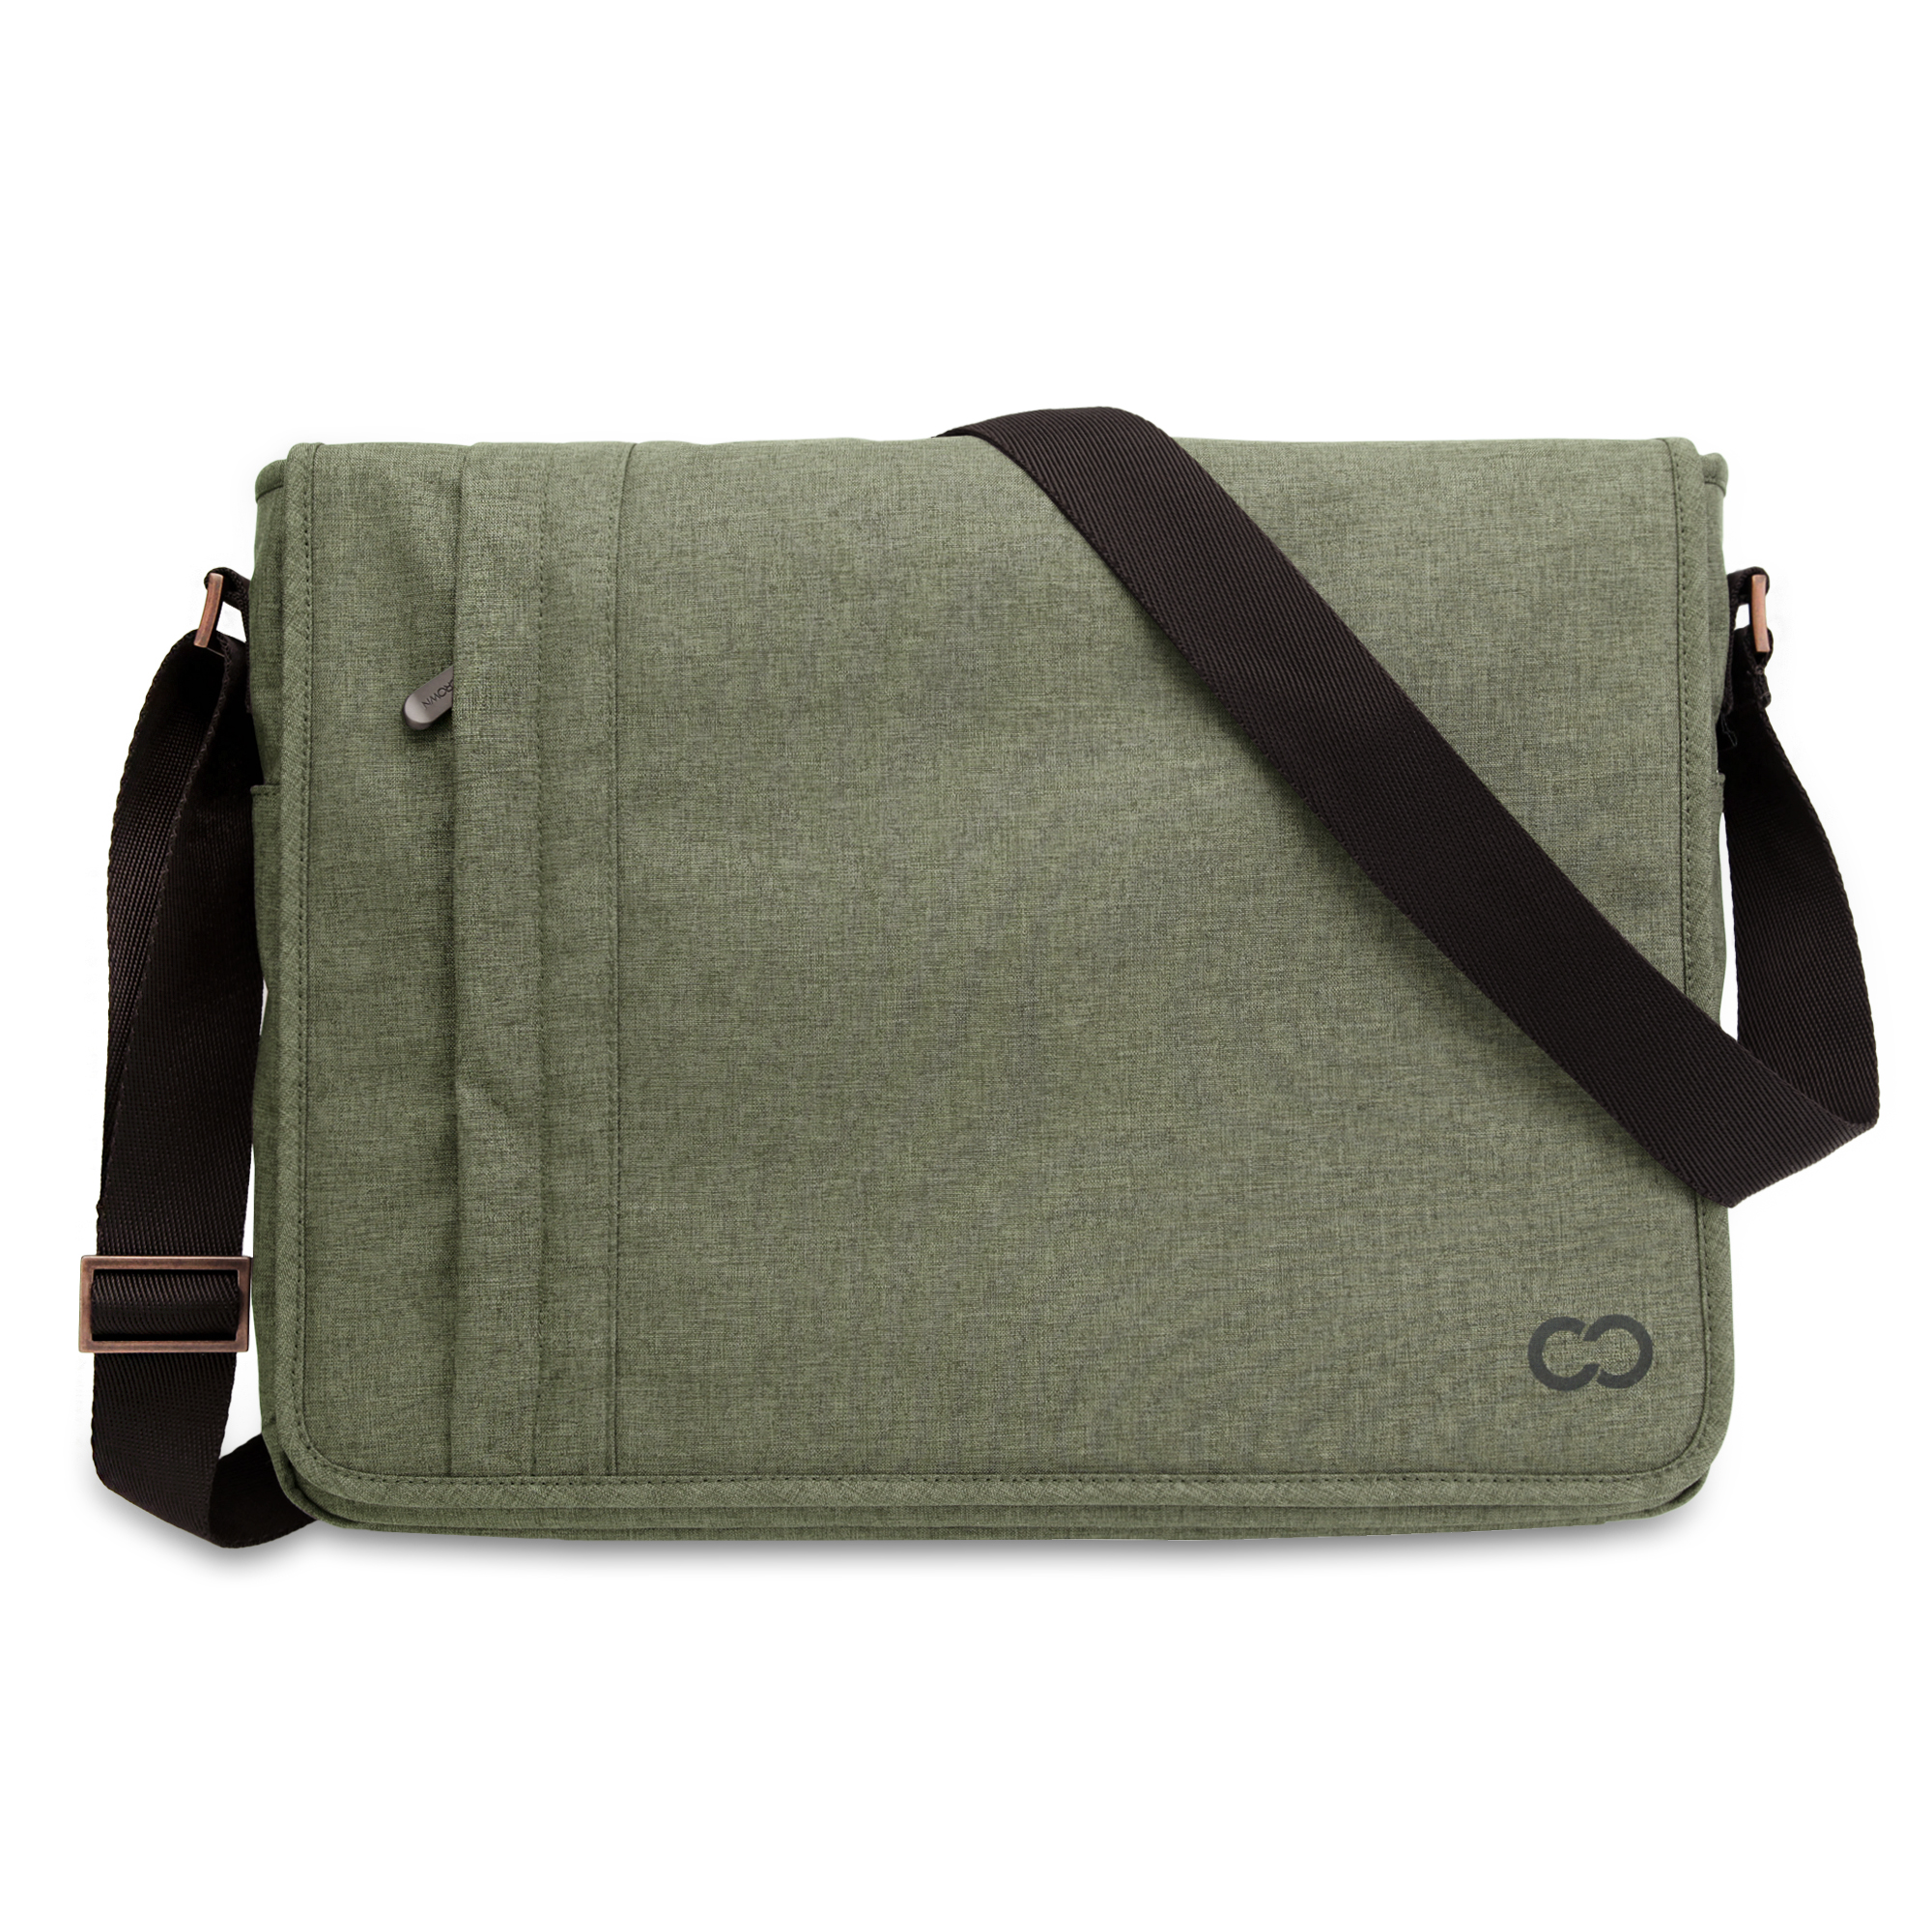 CaseCrown Canvas Horizontal Mobile Messenger Bag